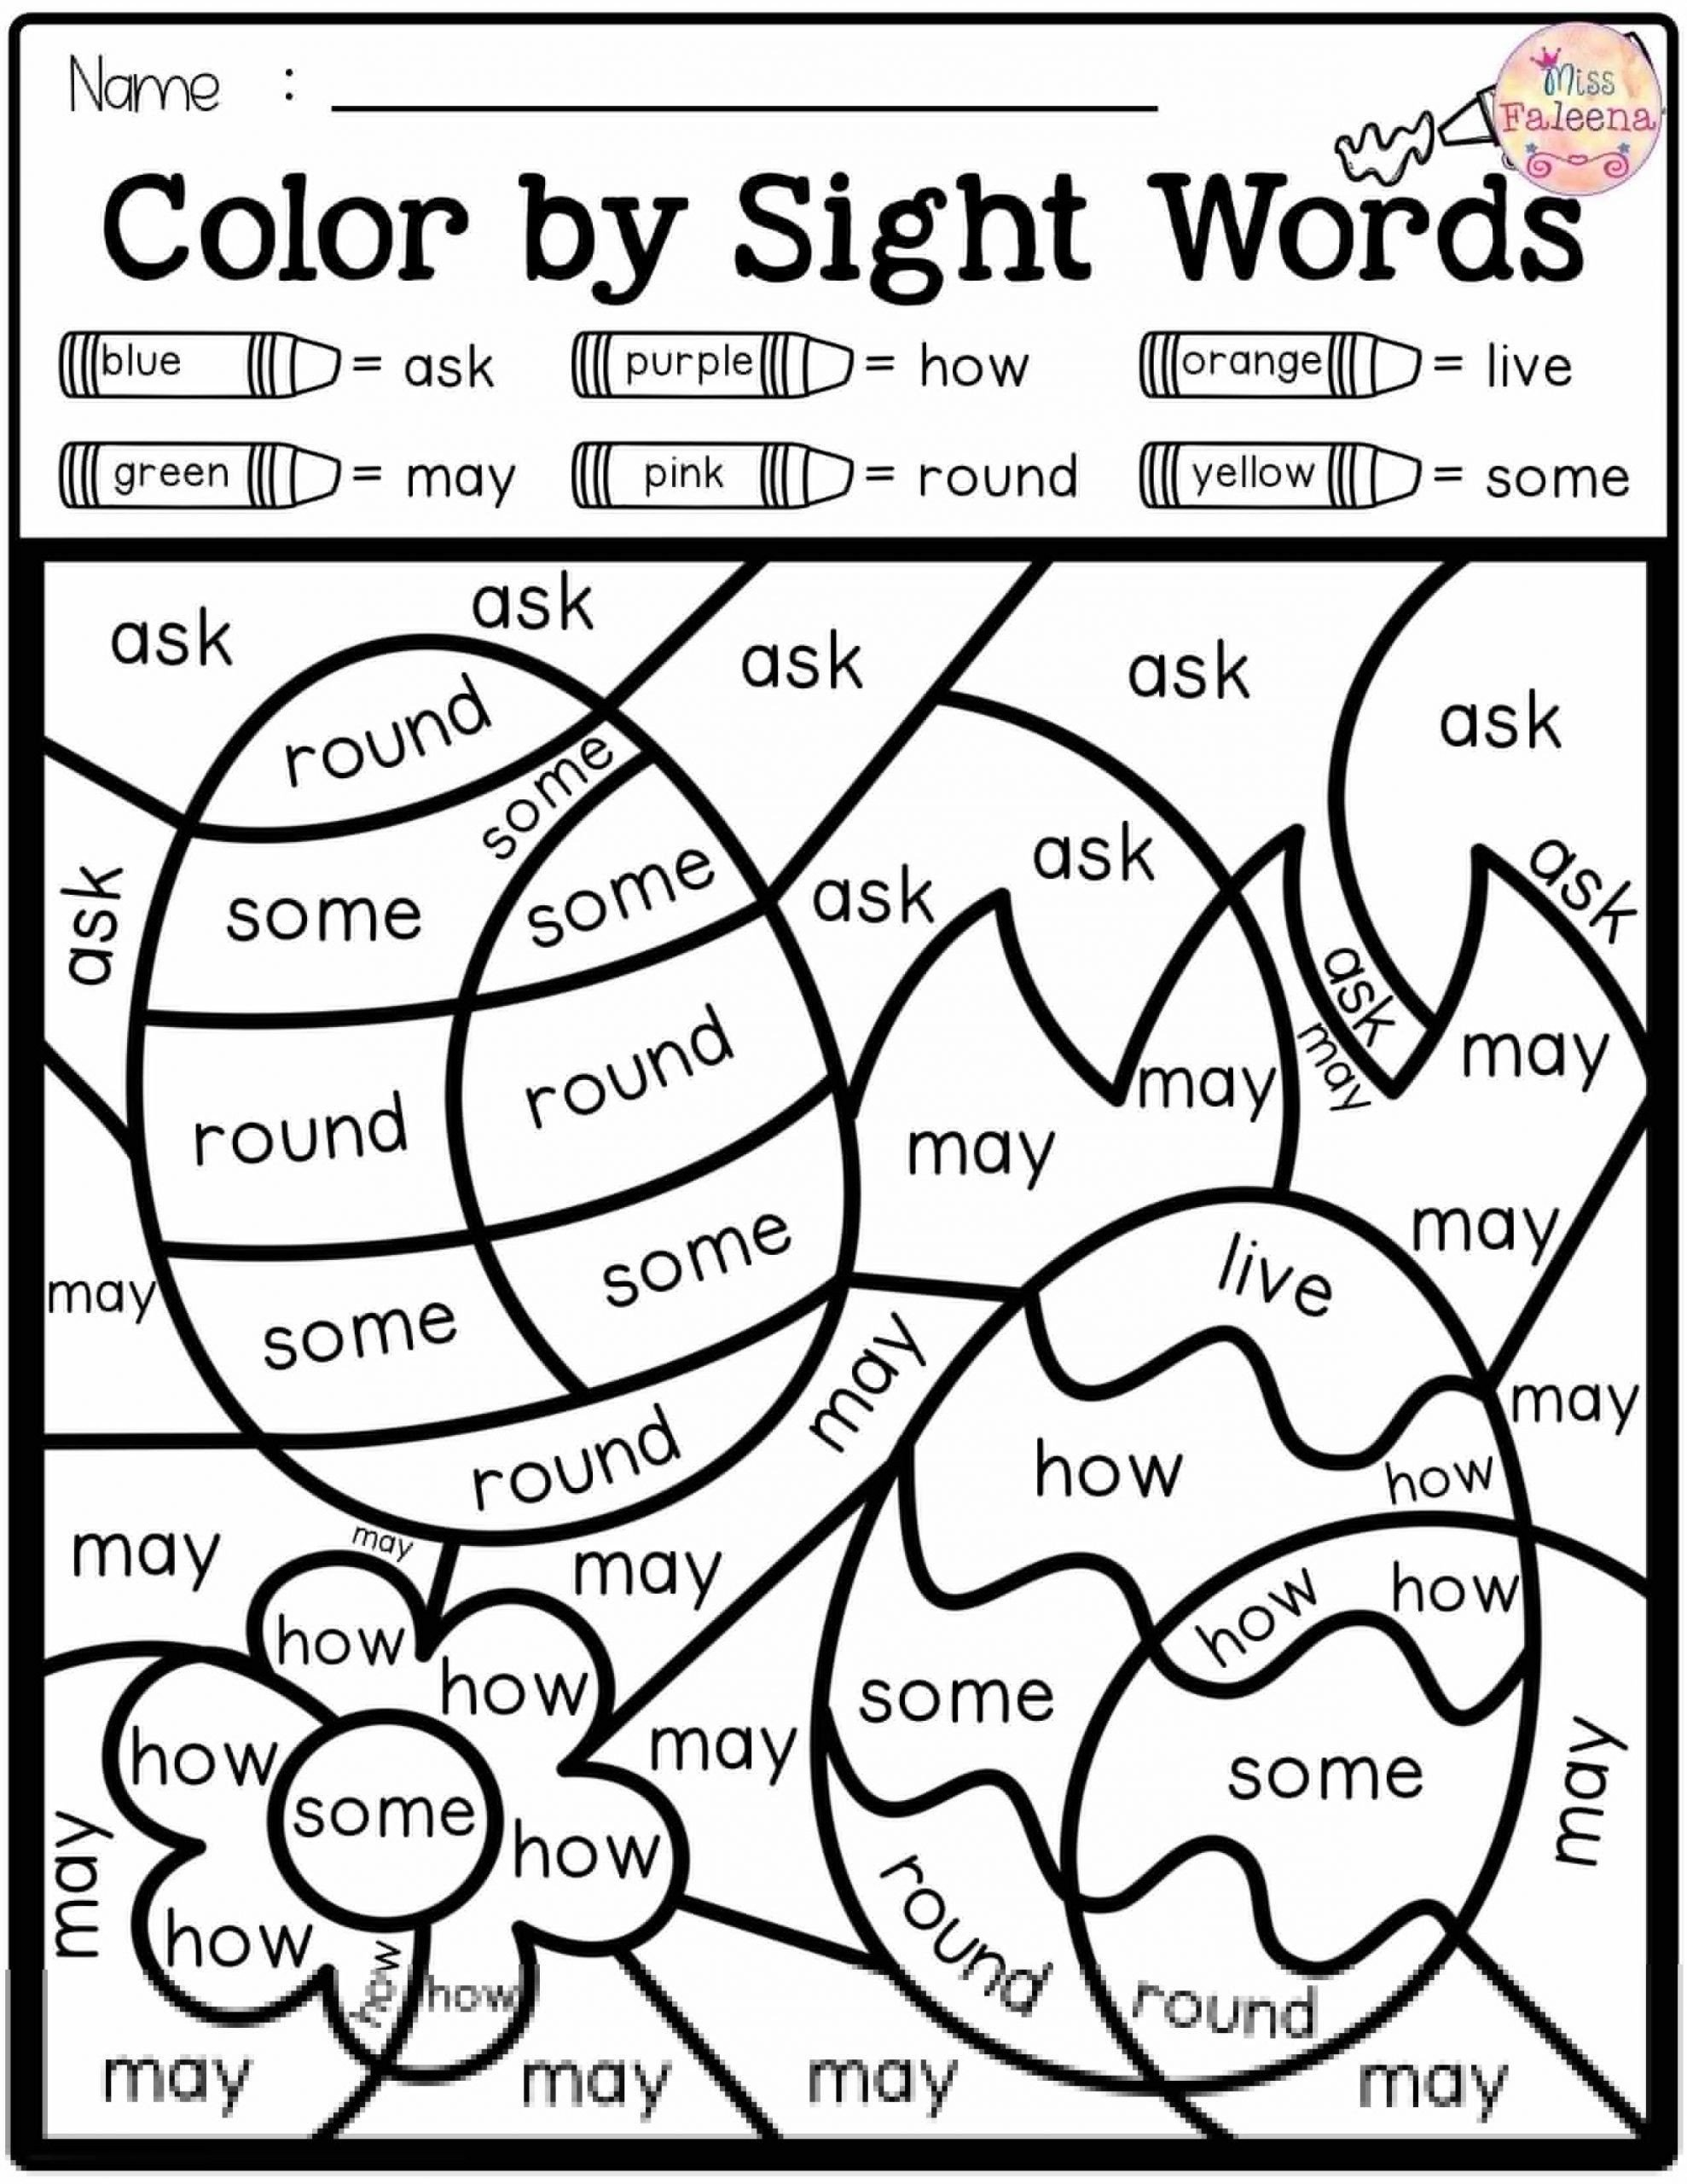 Kindergarten Color Words Worksheets Pin On Printable Worksheet for Kindergarten